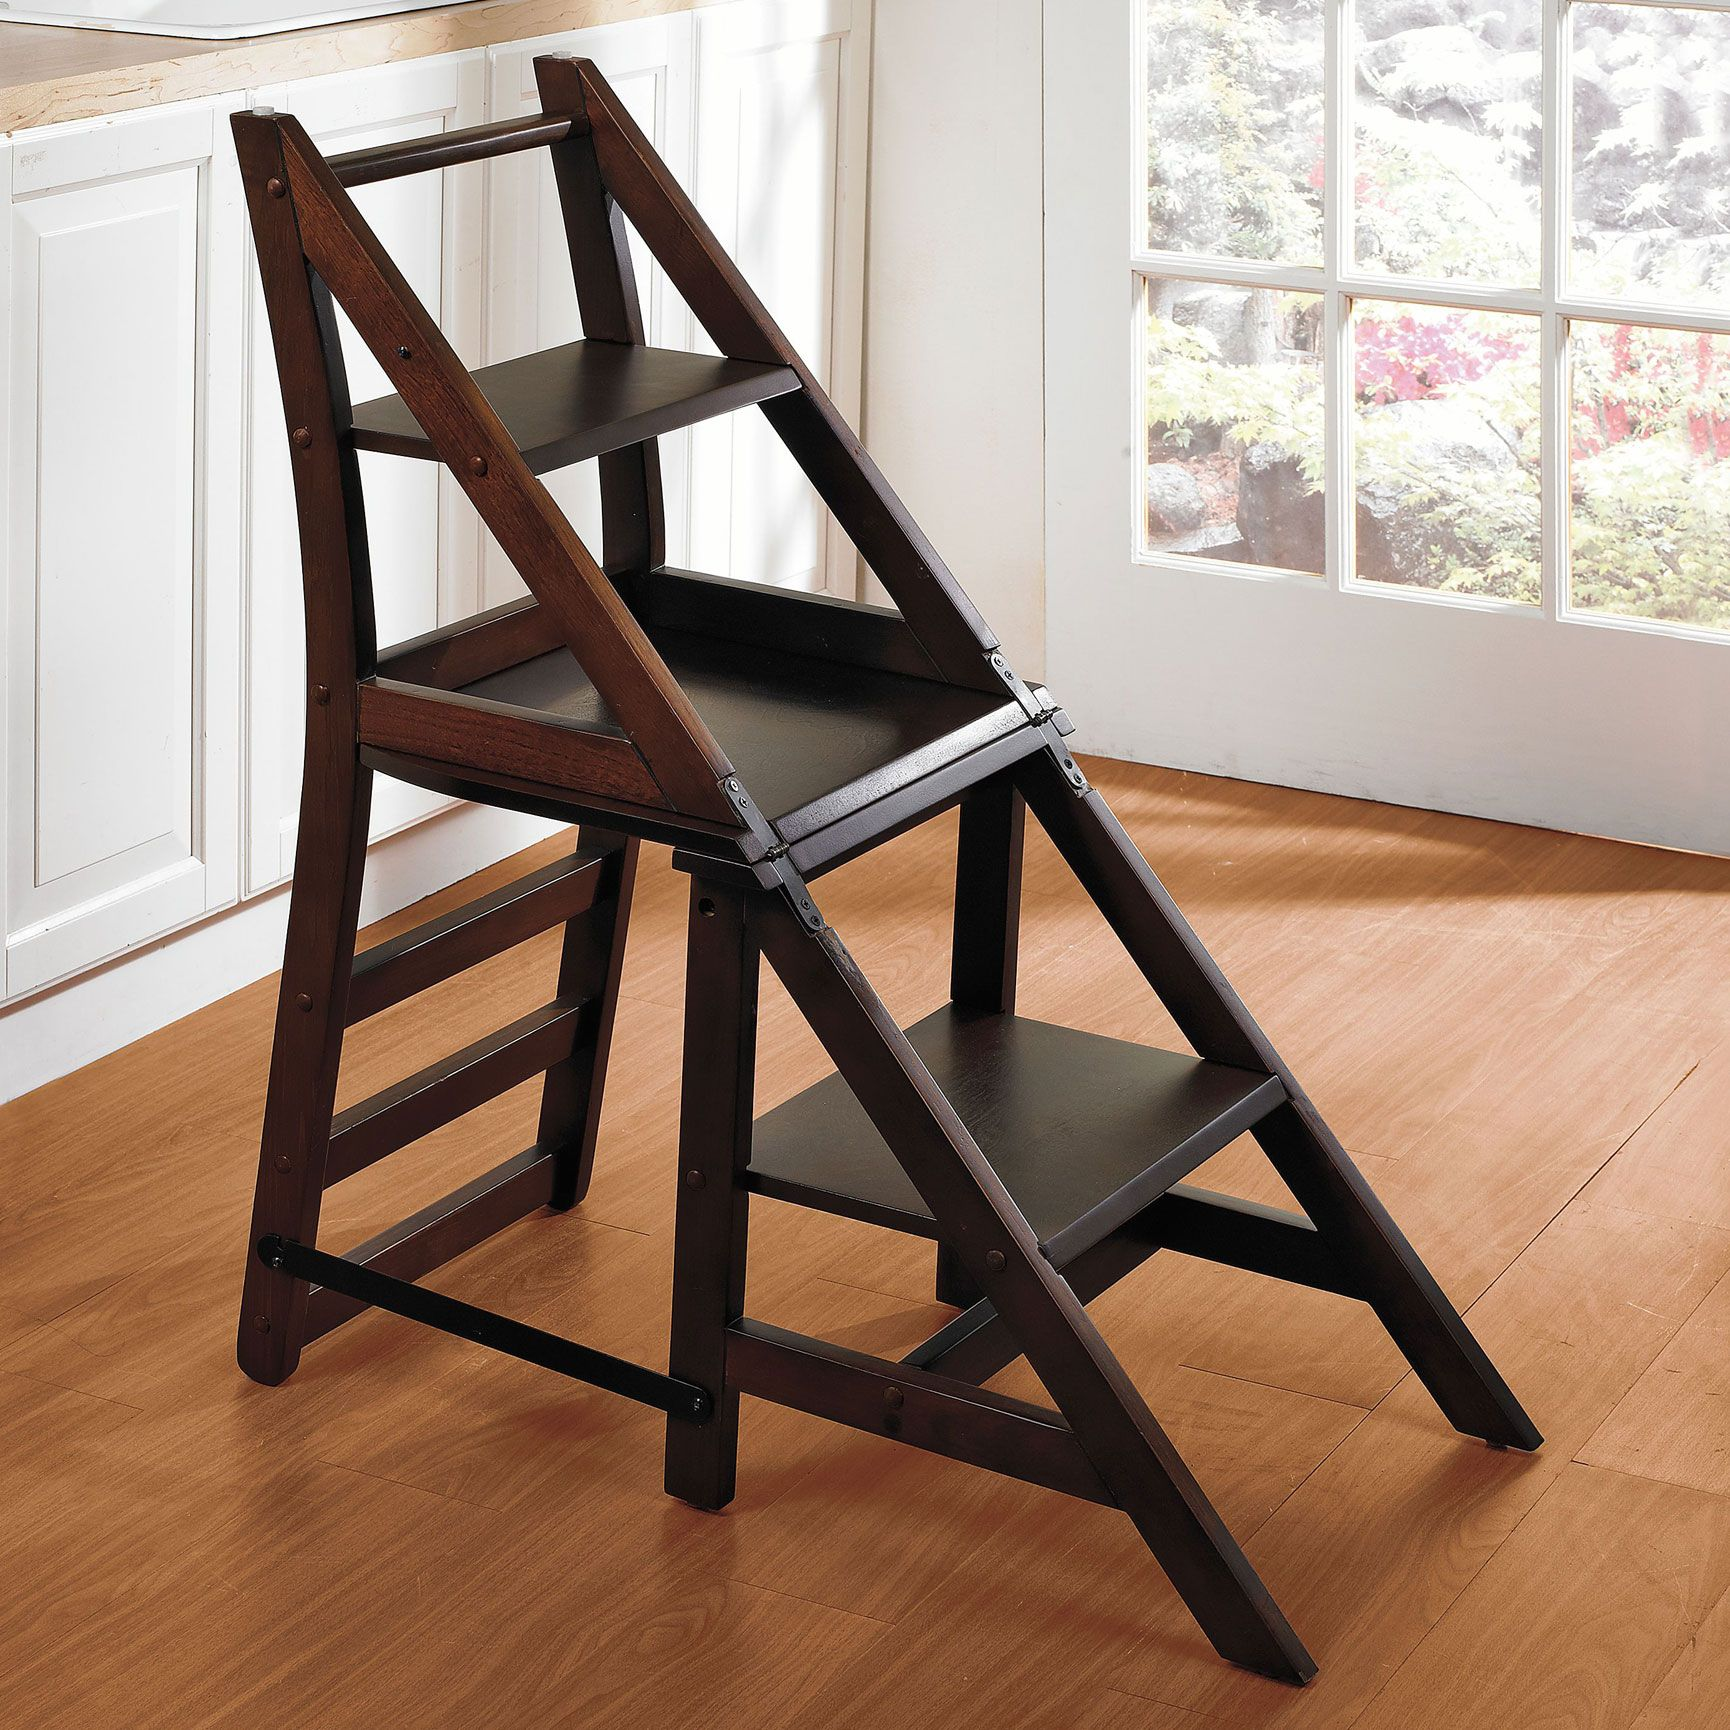 2 In 1 Step Ladder Chair Step Stools Brylanehome Decor Indoor Outdoor Furniture Furniture